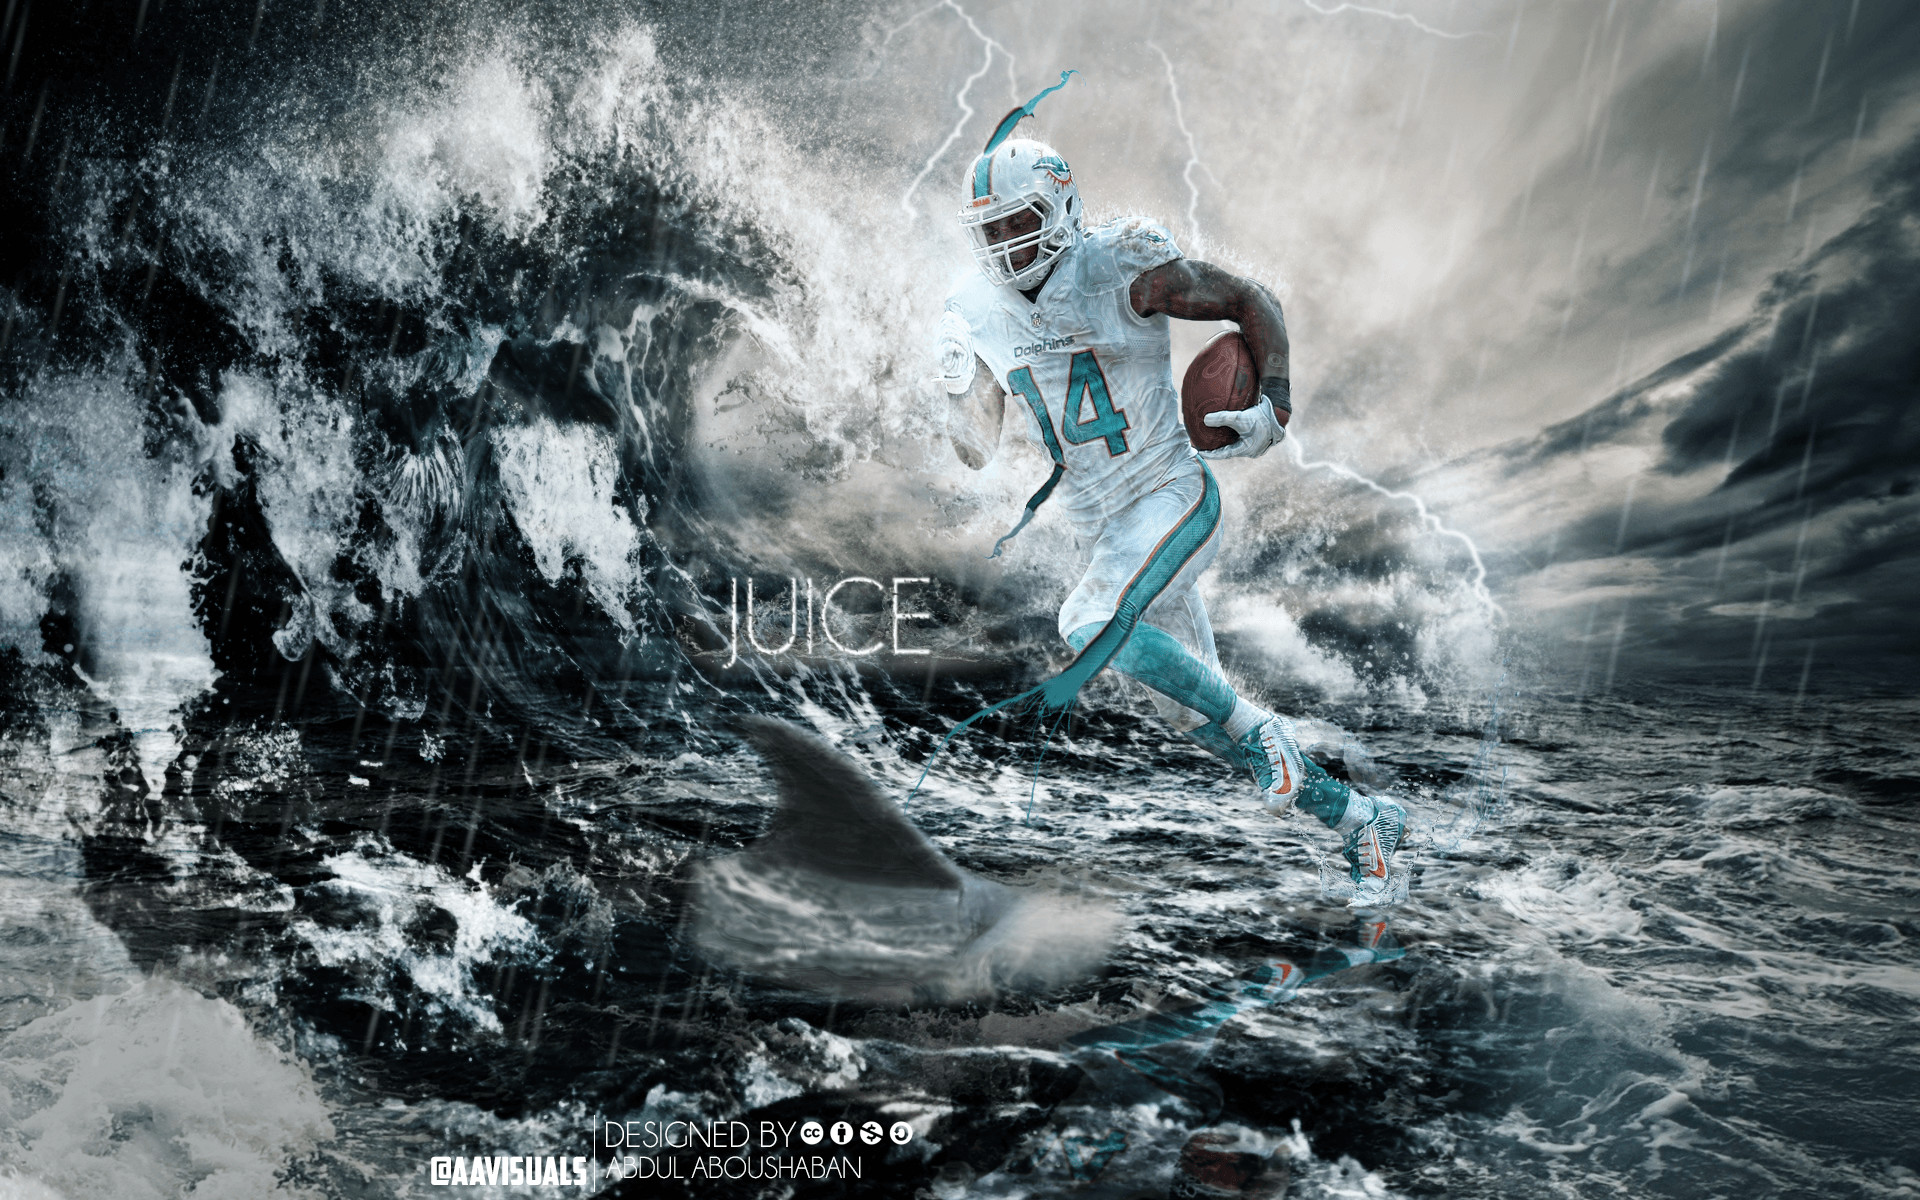 Jarvis landry wallpaper 71 images - Jarvis hd wallpaper for pc ...